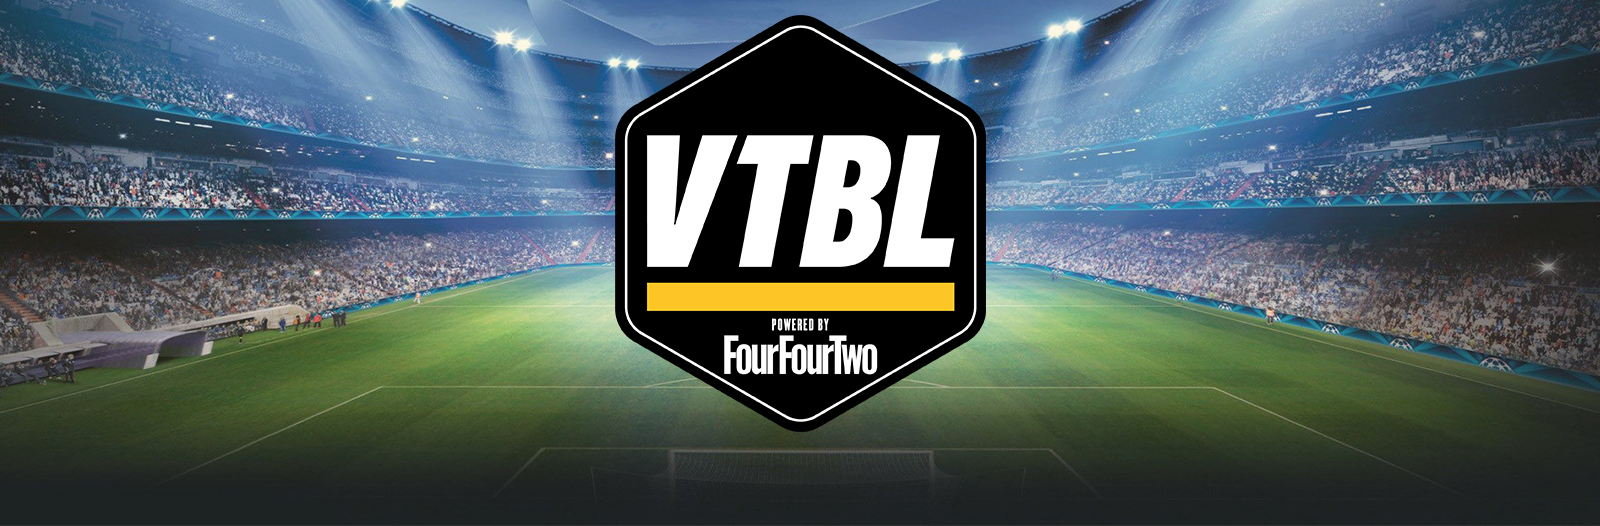 VTBL powered by FourFourTwo